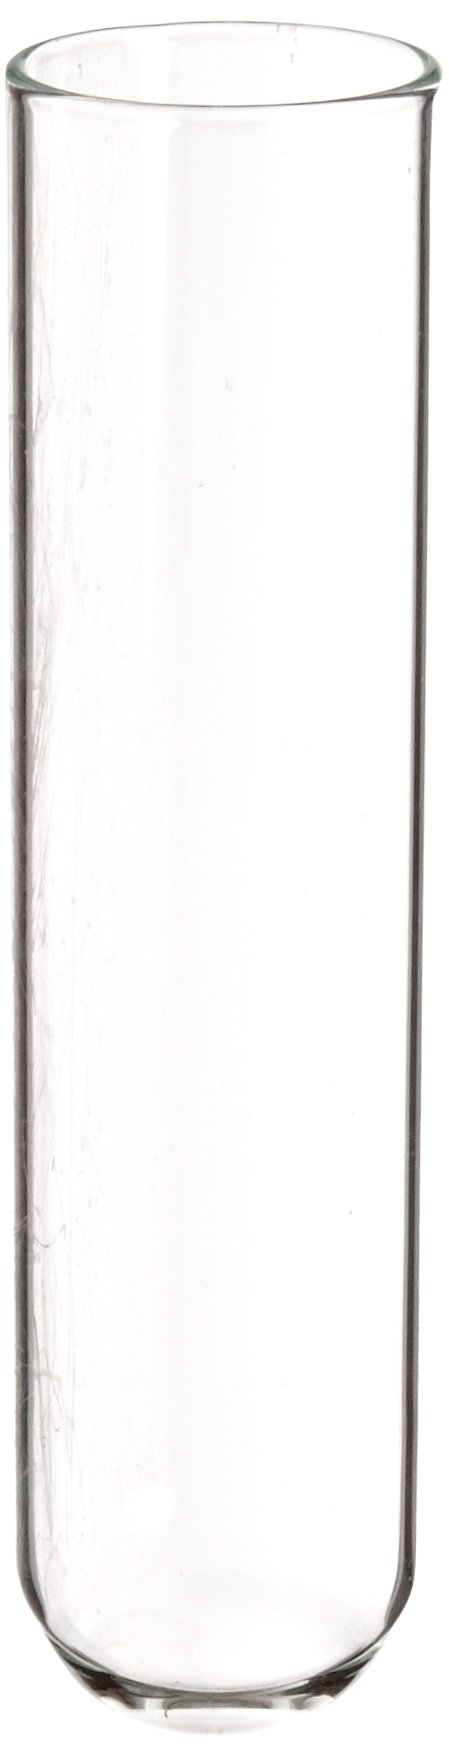 Chemglass CLS-EPA25100 Glass Culture Tube, 25mm Diameter x 100mm Height (Pack of 144)